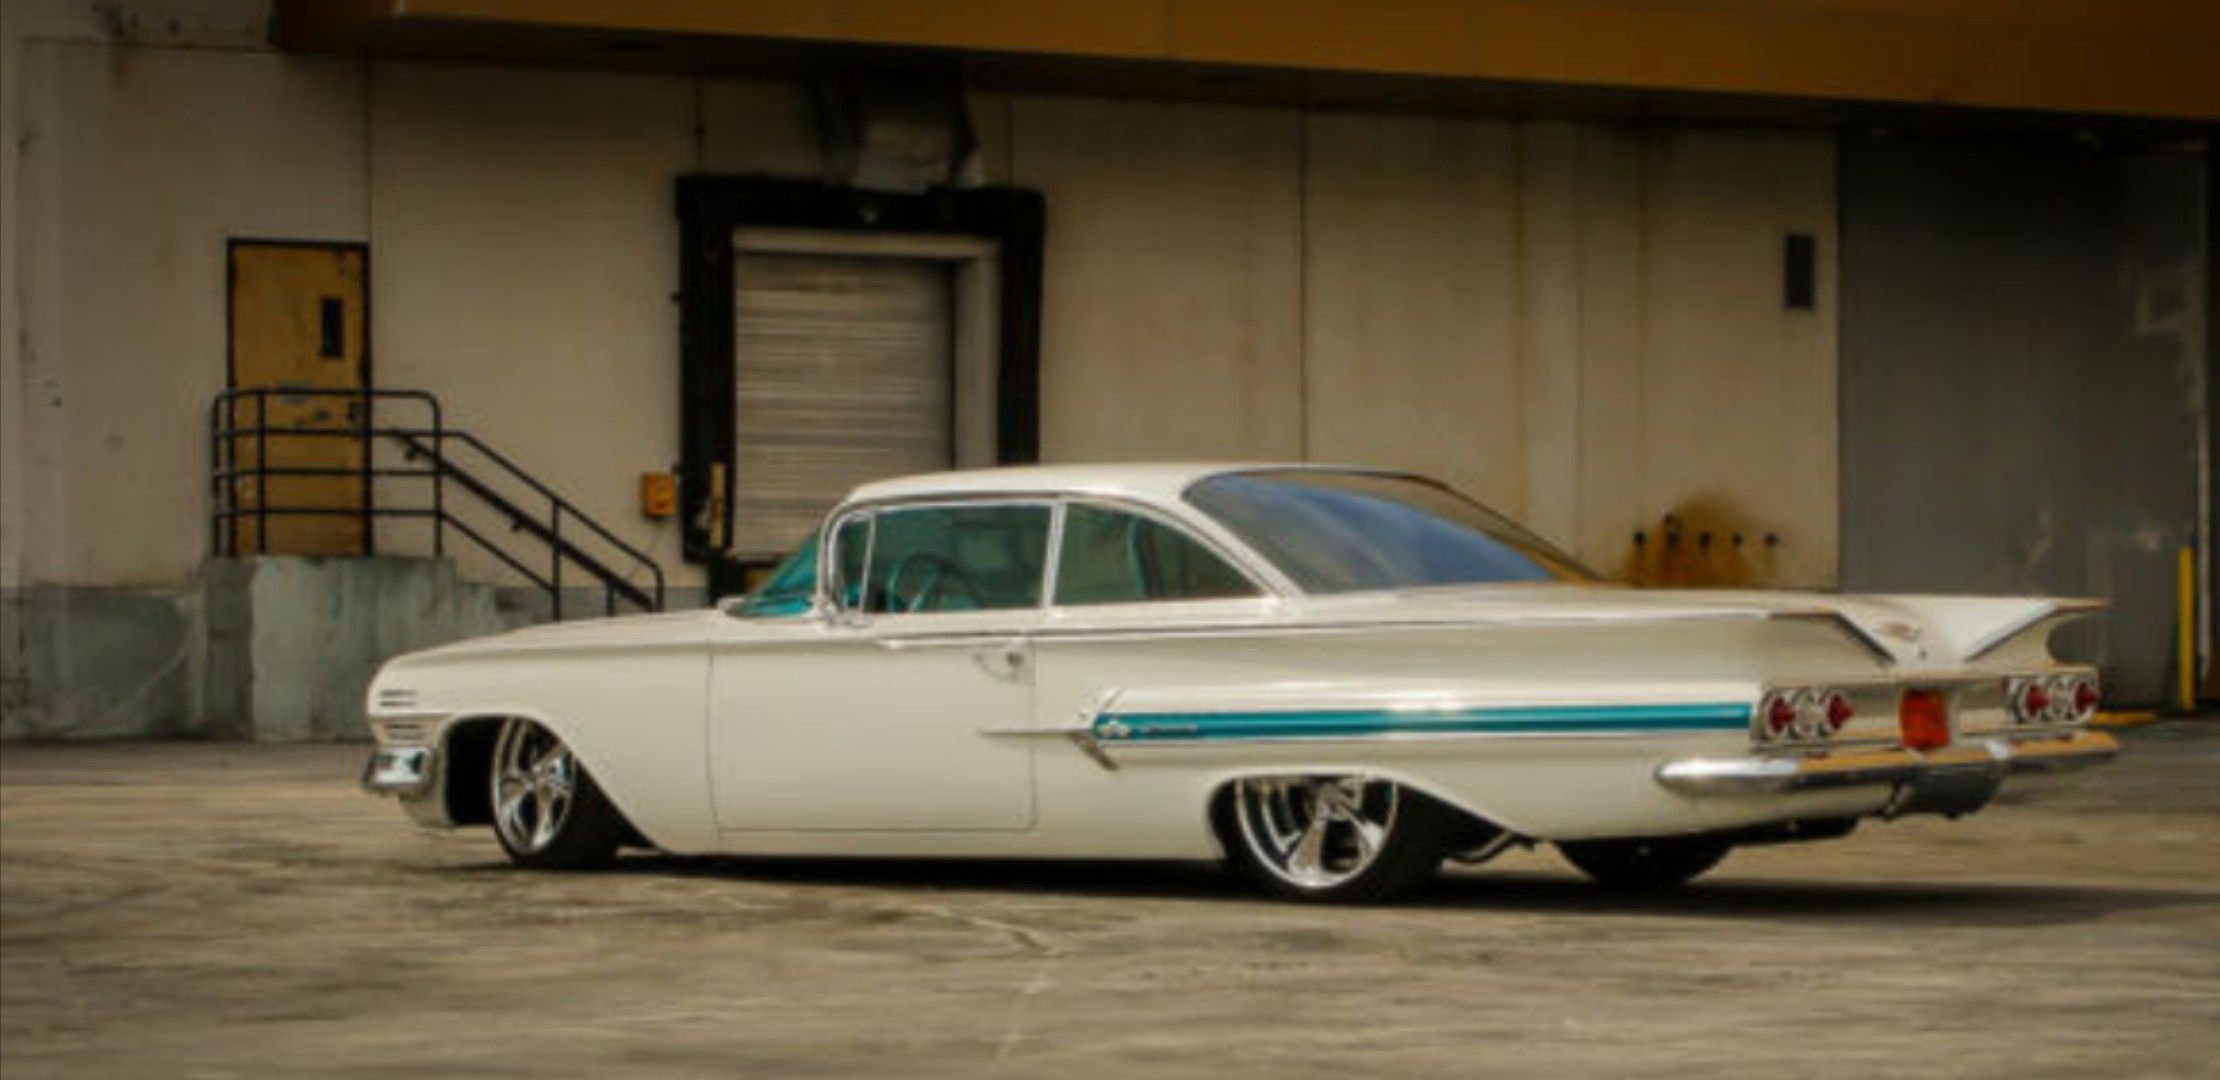 Pin By Robert Sierra On Cars With Images Impala Chevrolet